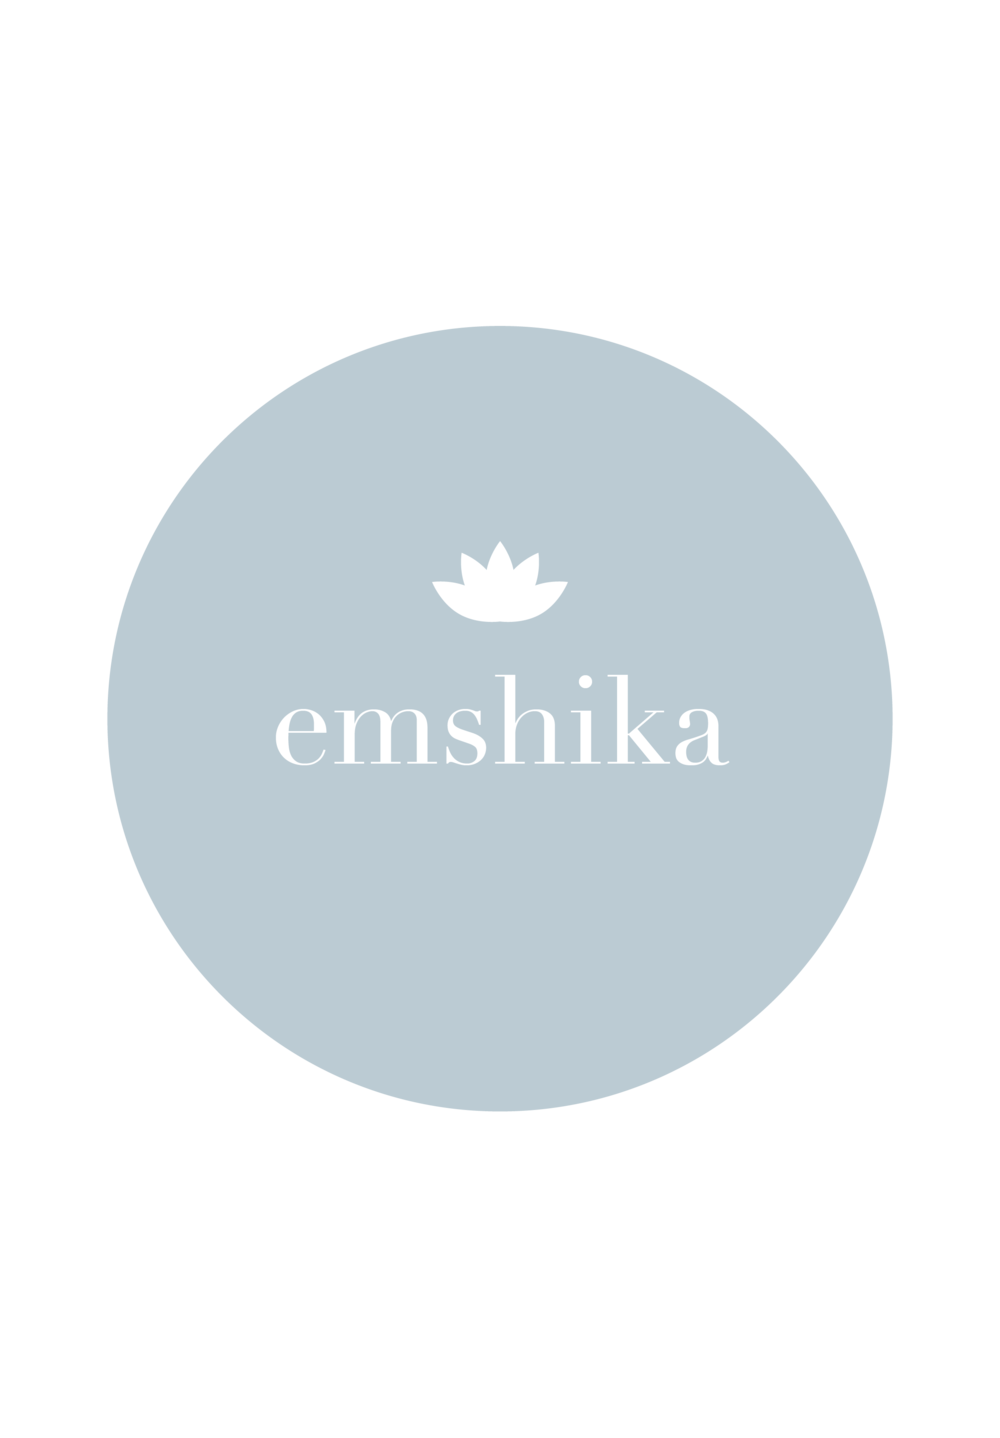 Emshika-Final-Artwork-01.png